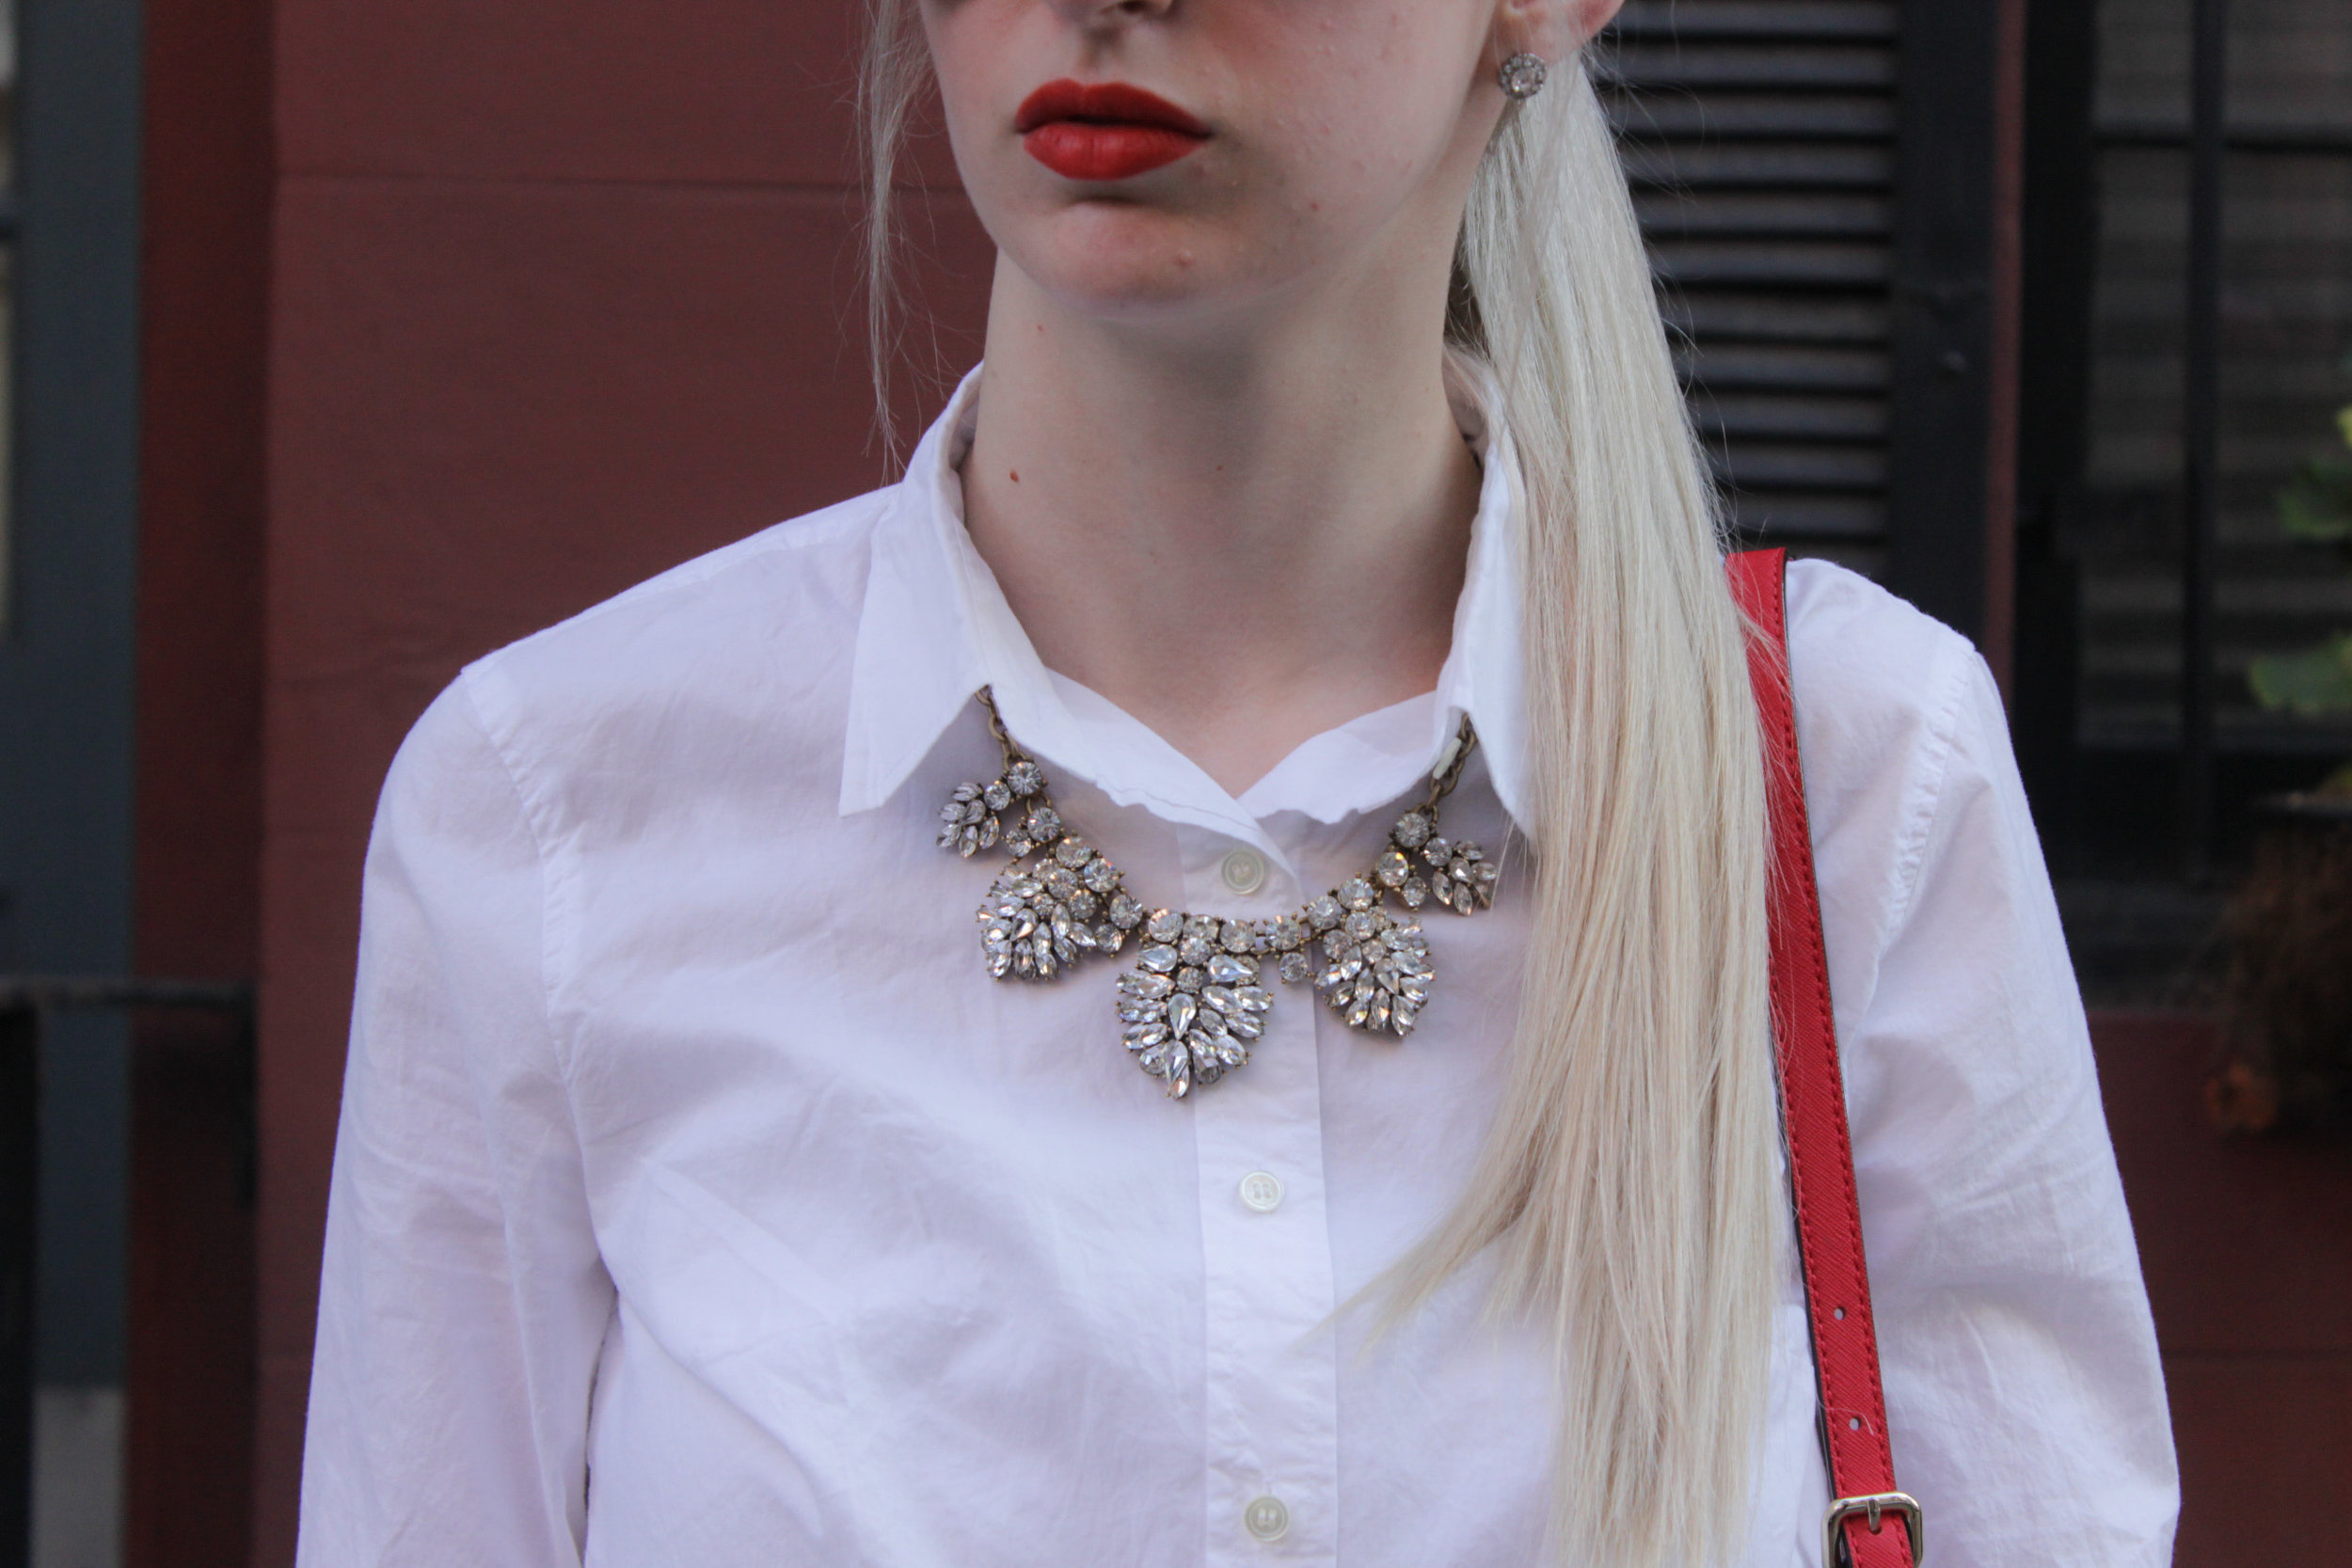 American Eagle relaxed skinny jeans, J.Crew white boy button down, tan heeled sandals, J.Crew crystal statement necklace, Kate Spade Cedar Street Maise, Kat Von D Lipstick in A go go